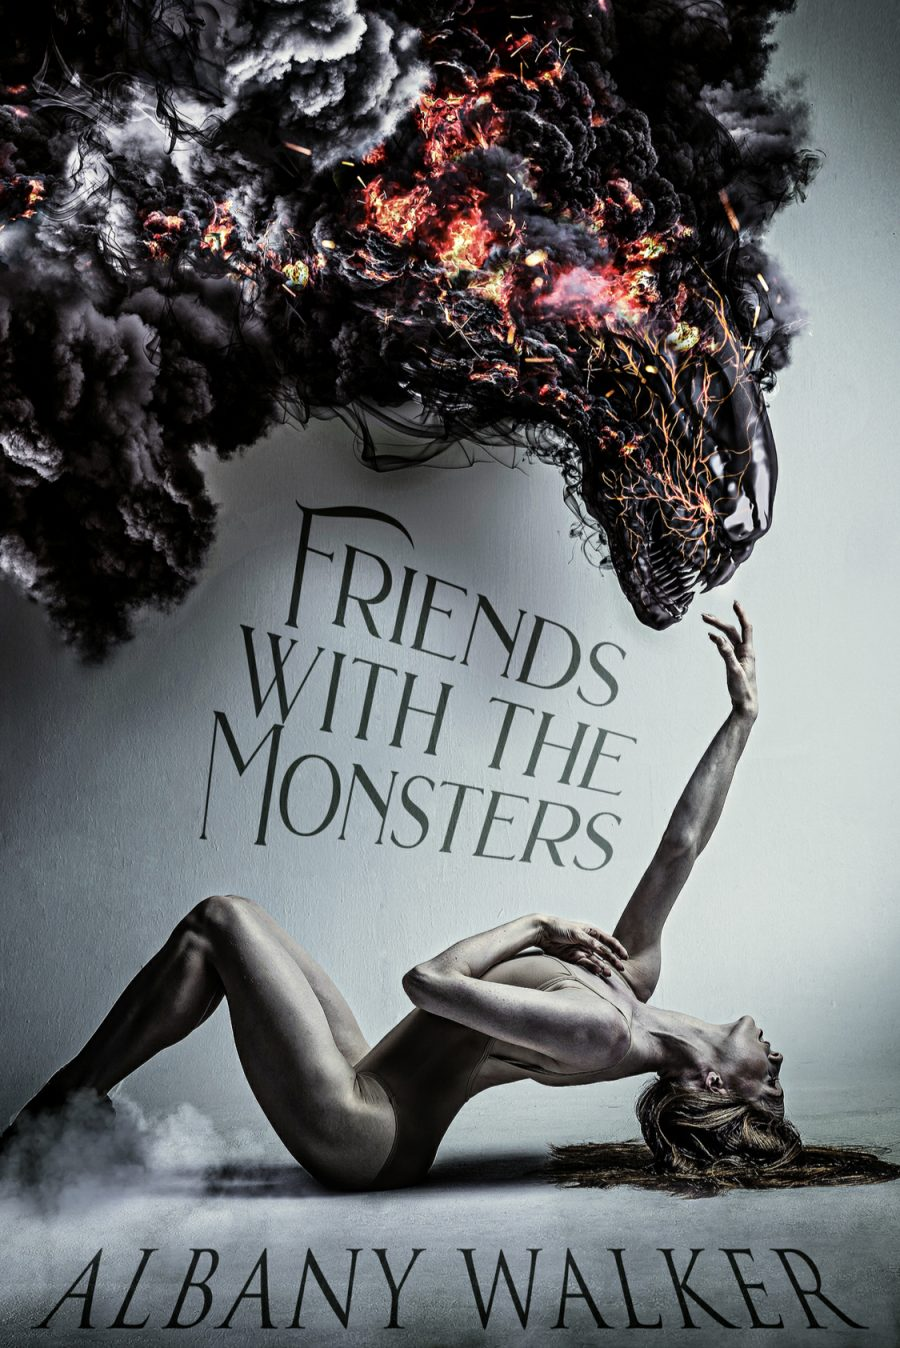 Friends With The Monsters by Albany Walker - A Book Review #BookReview #FastBurn #MediumBurn #RH #ReverseHarem #PNR #Monsters #KindleUnlimited #KU